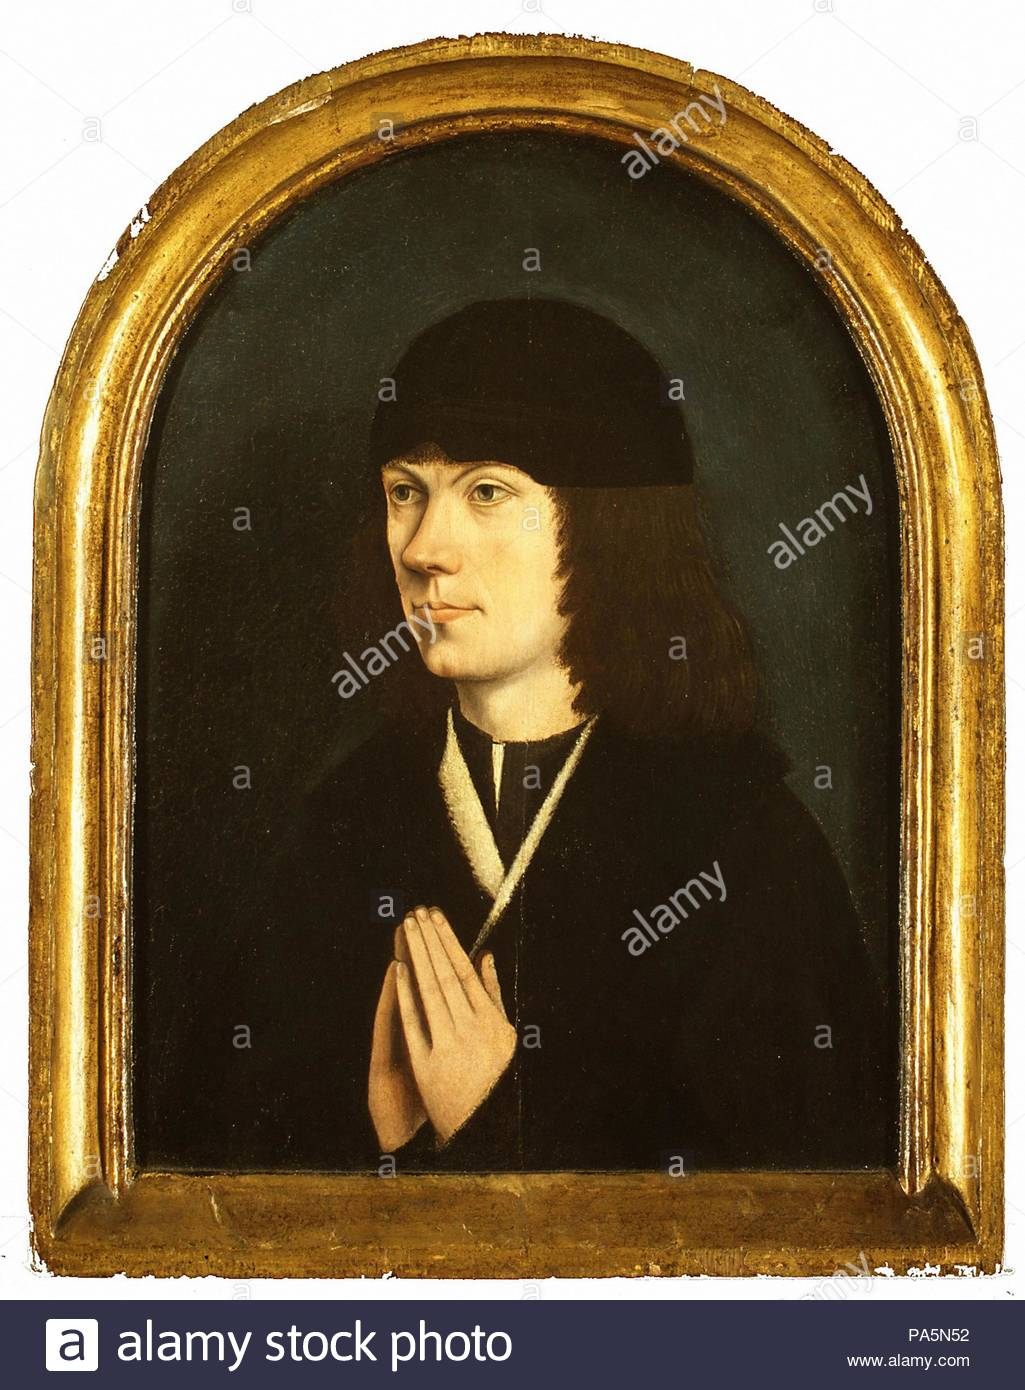 Portrait of a Young Man, Oil on wood, Overall, with arched top and engaged frame, 13 x 10 1/8 in. (33 x 25.7 cm); painted surface 10 5/8 x 8 in. (27 x 20.3 cm), Paintings, French (Burgundian?) Painter (ca. 1495). - Stock Image